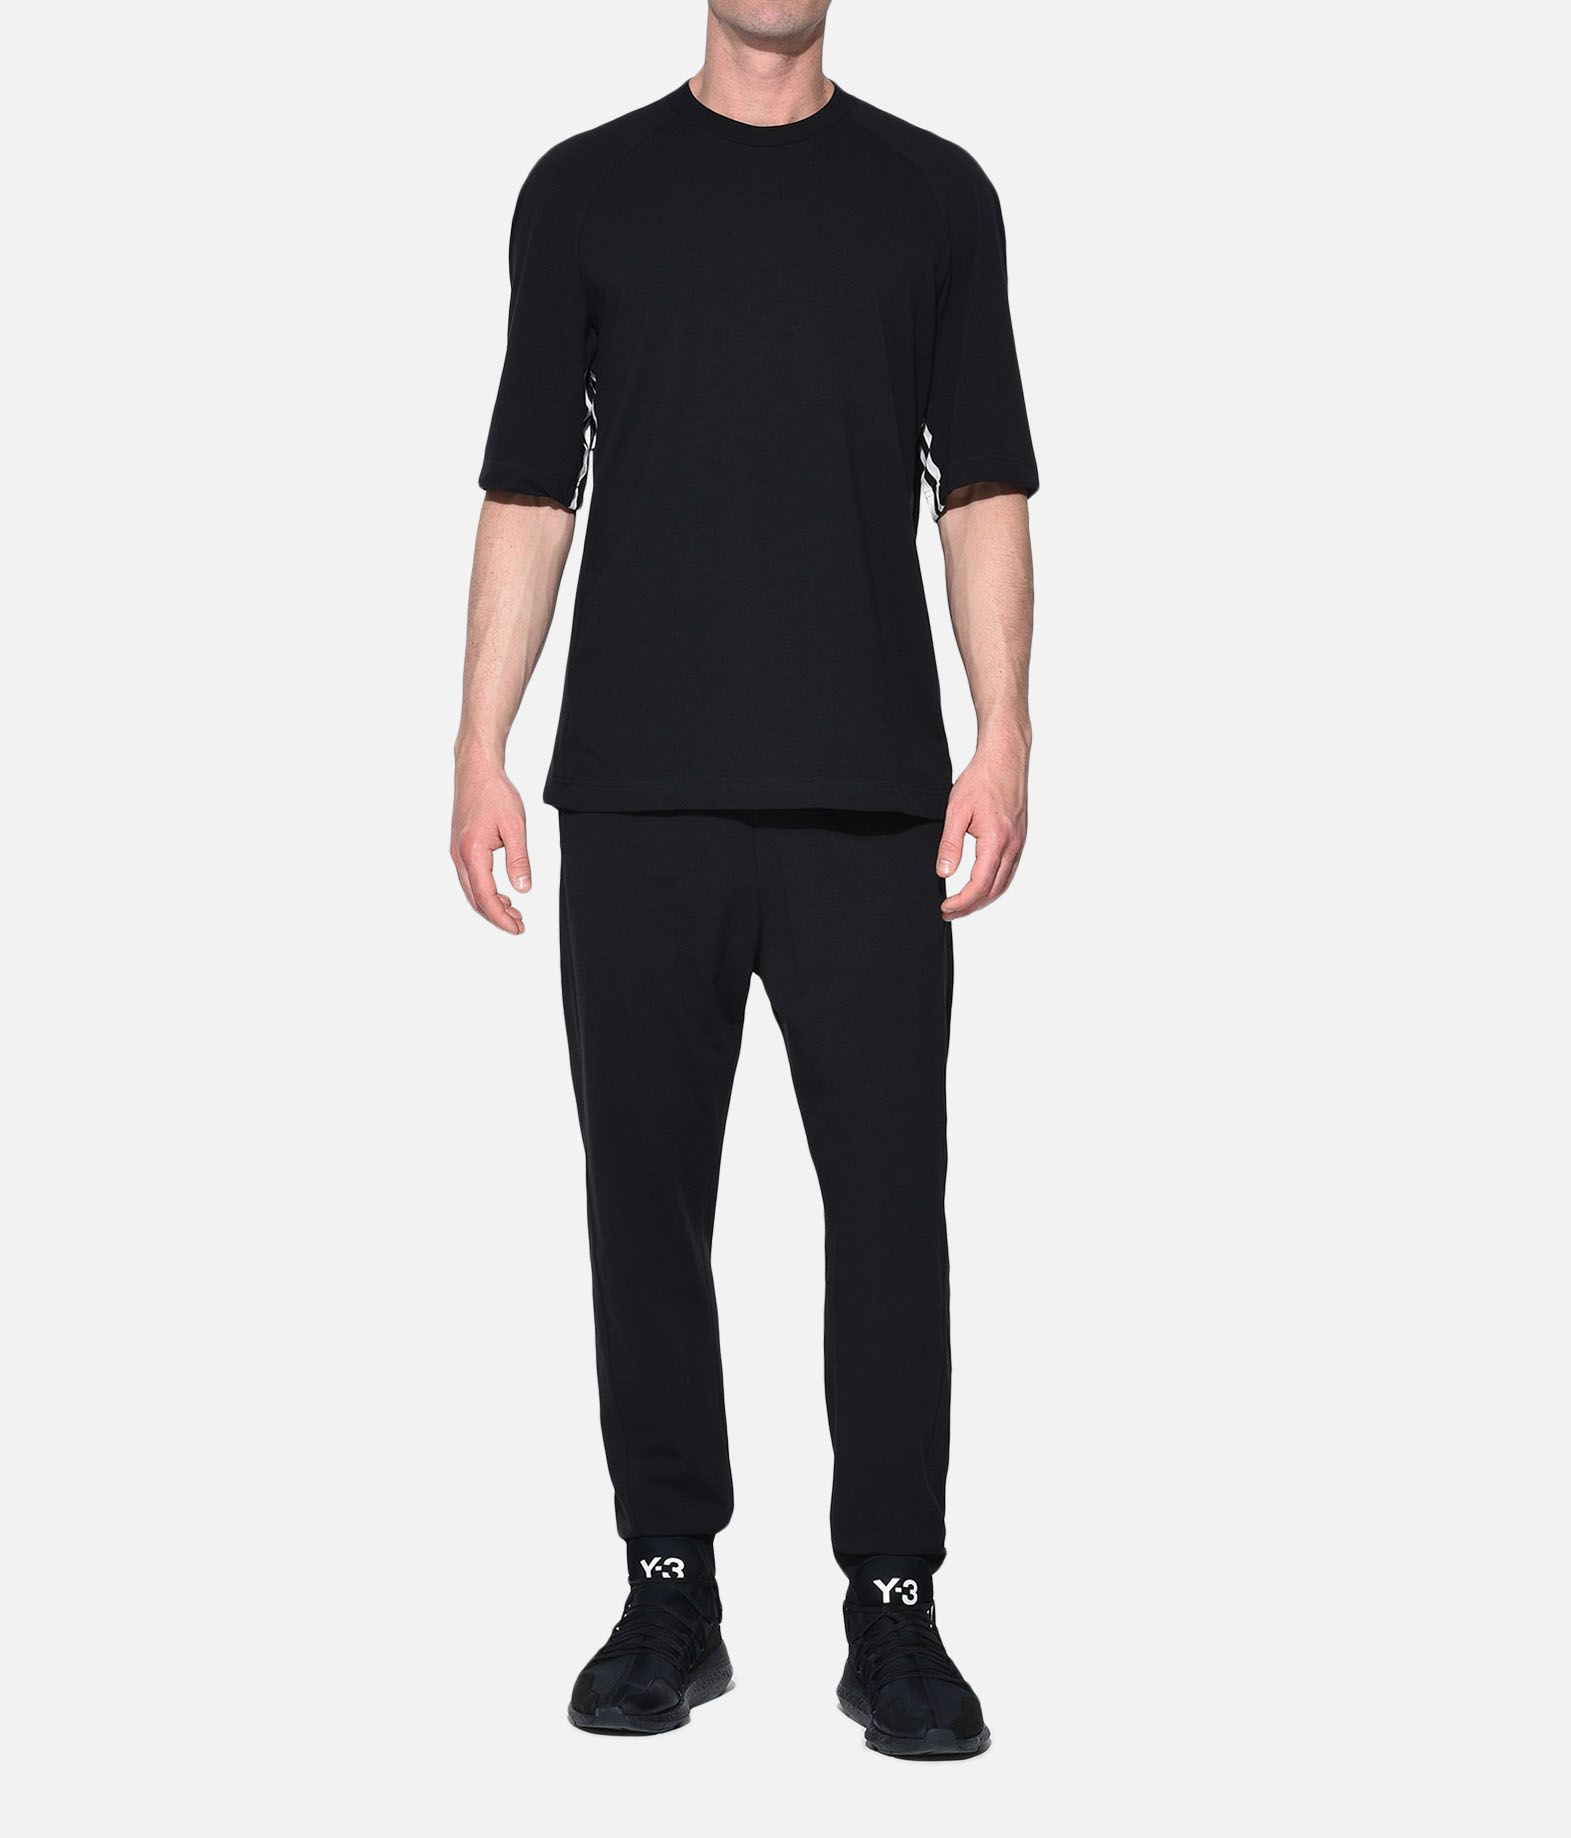 Y-3 Y-3 Logo Long John Pants Leggings Homme a